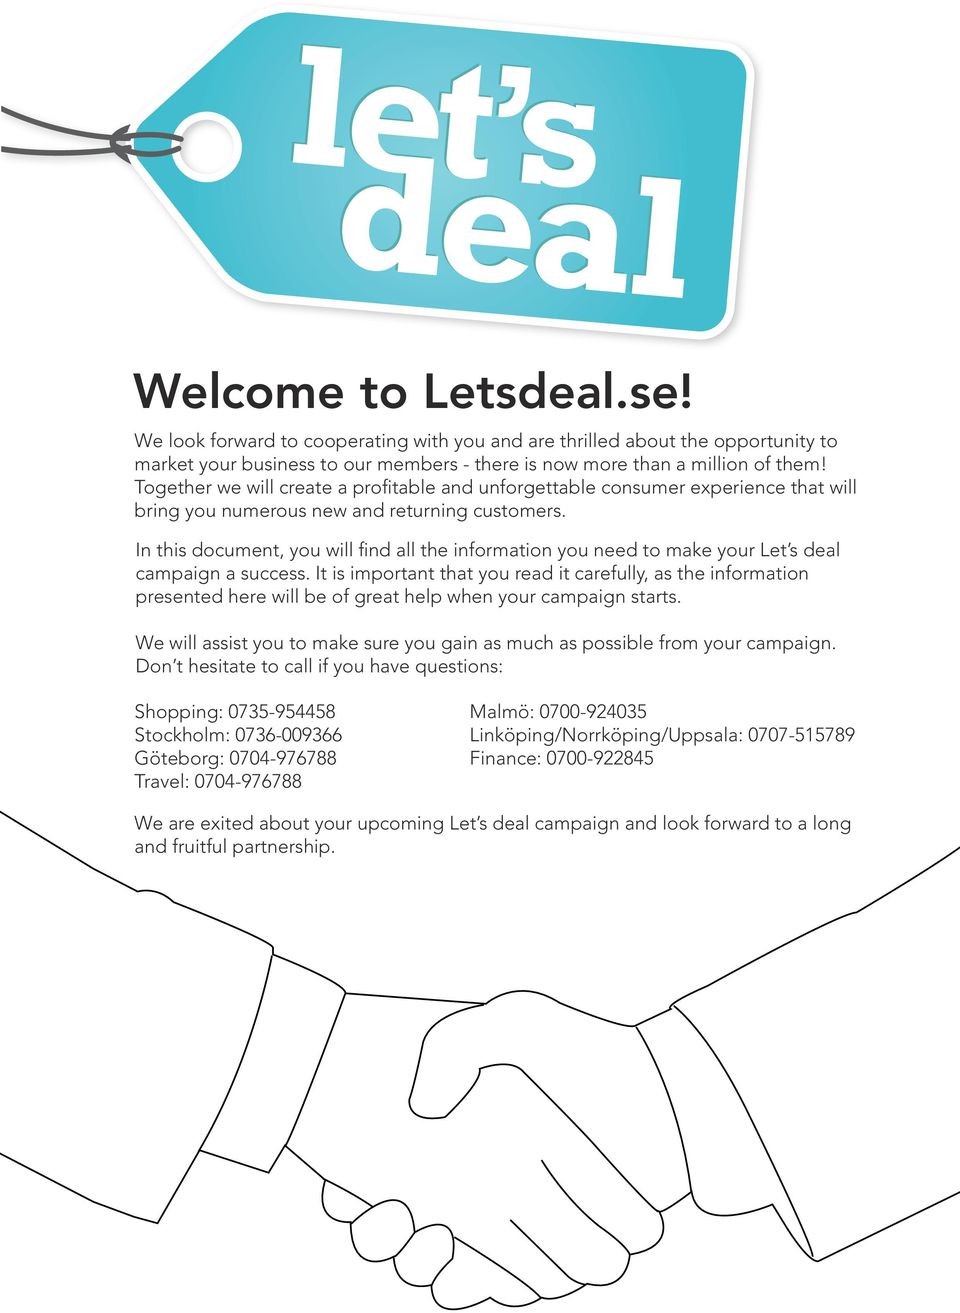 In this document, you will find all the information you need to make your Let s deal campaign a success.